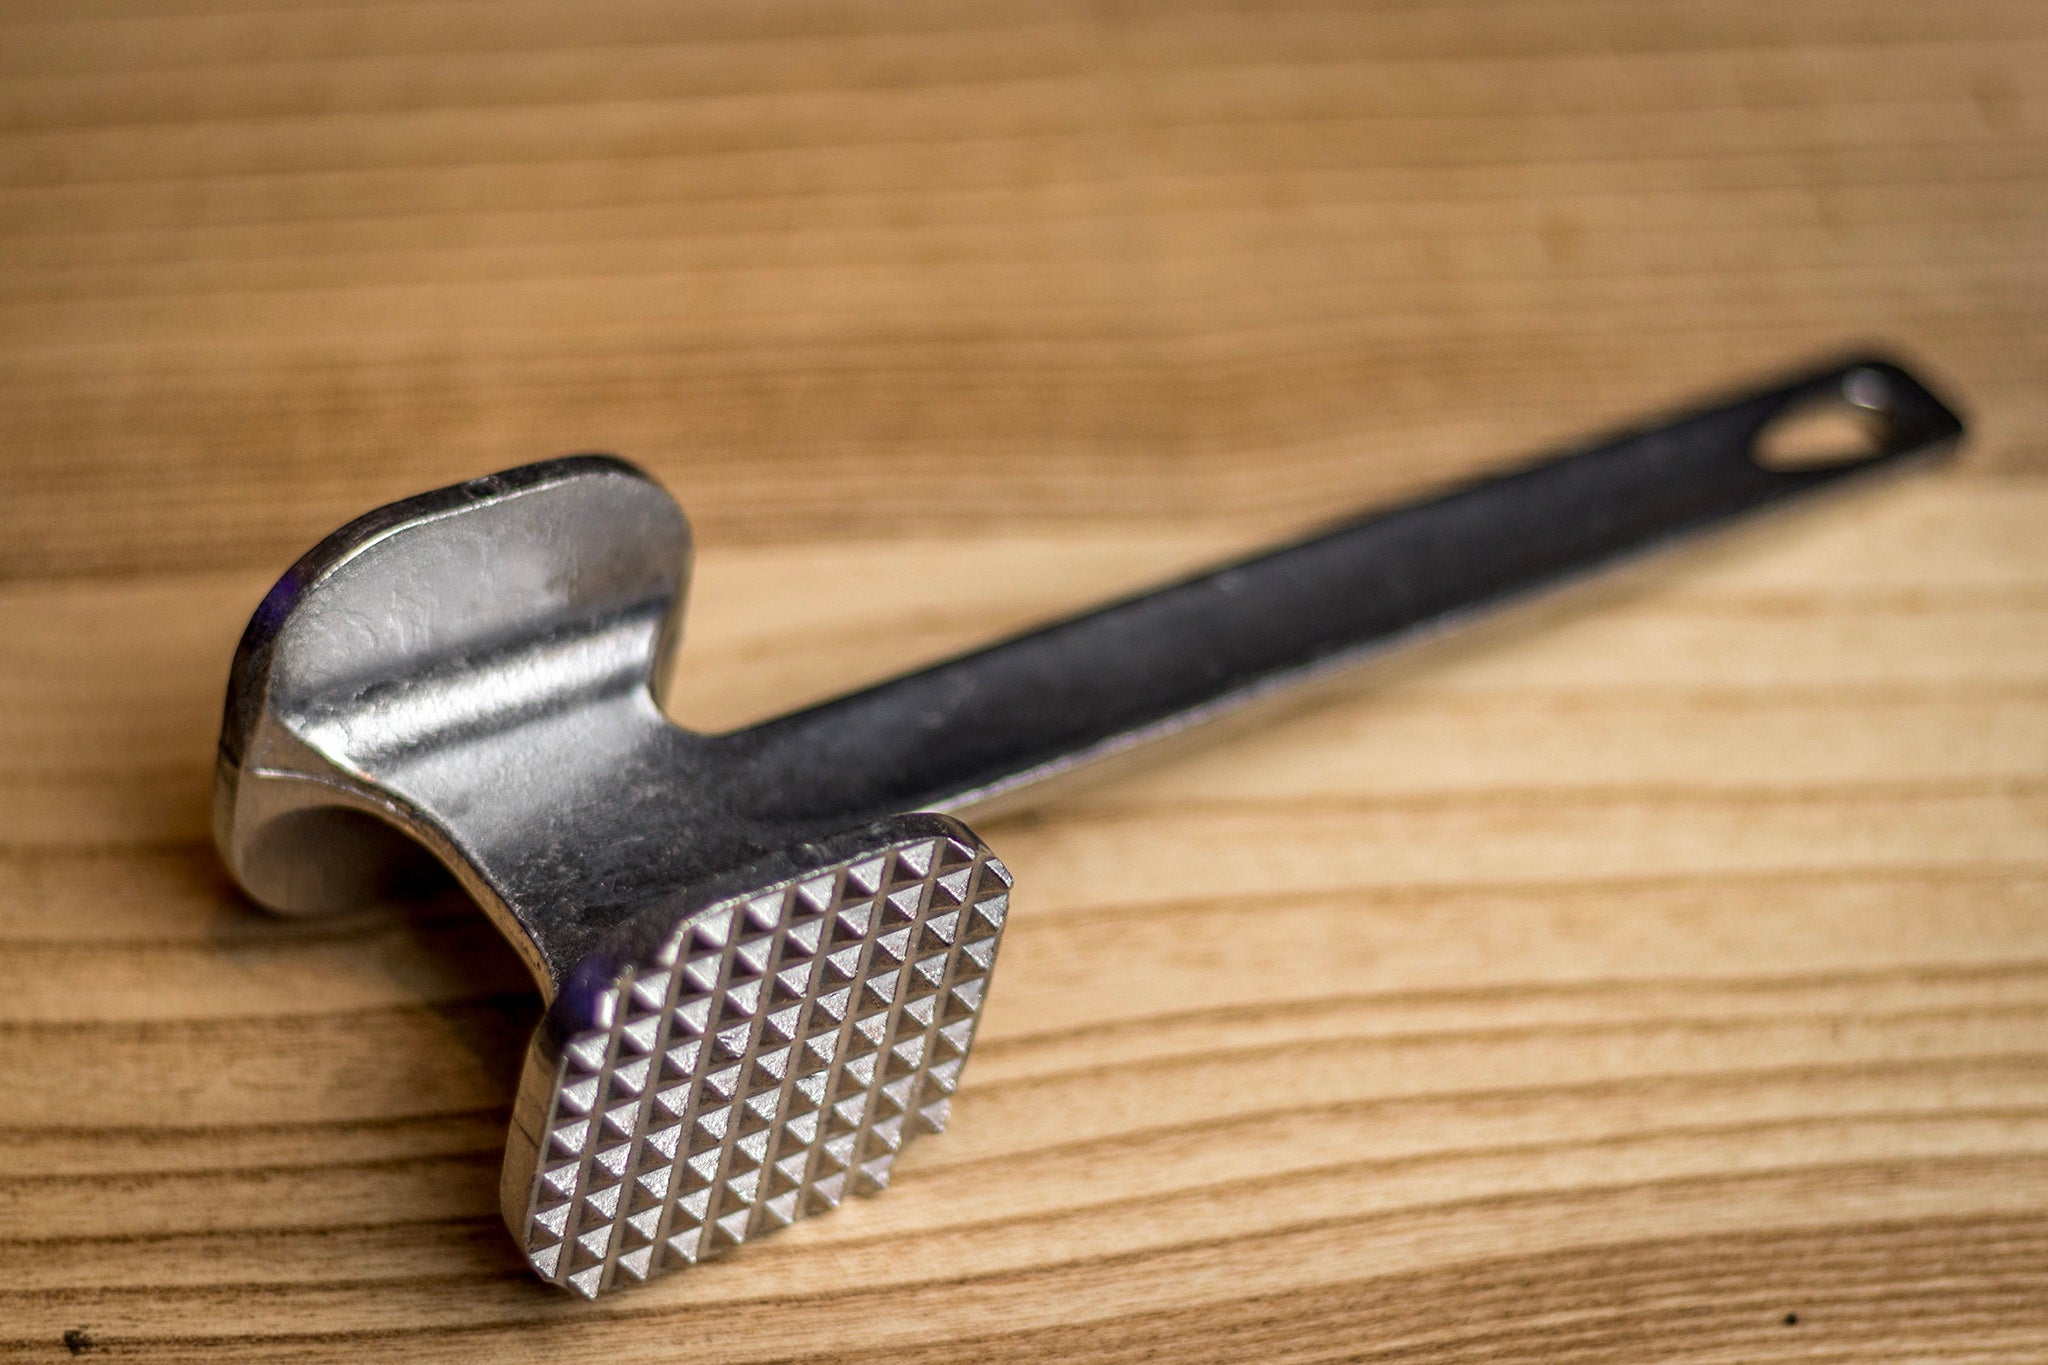 Stainless steel double-sided meat tenderizer.